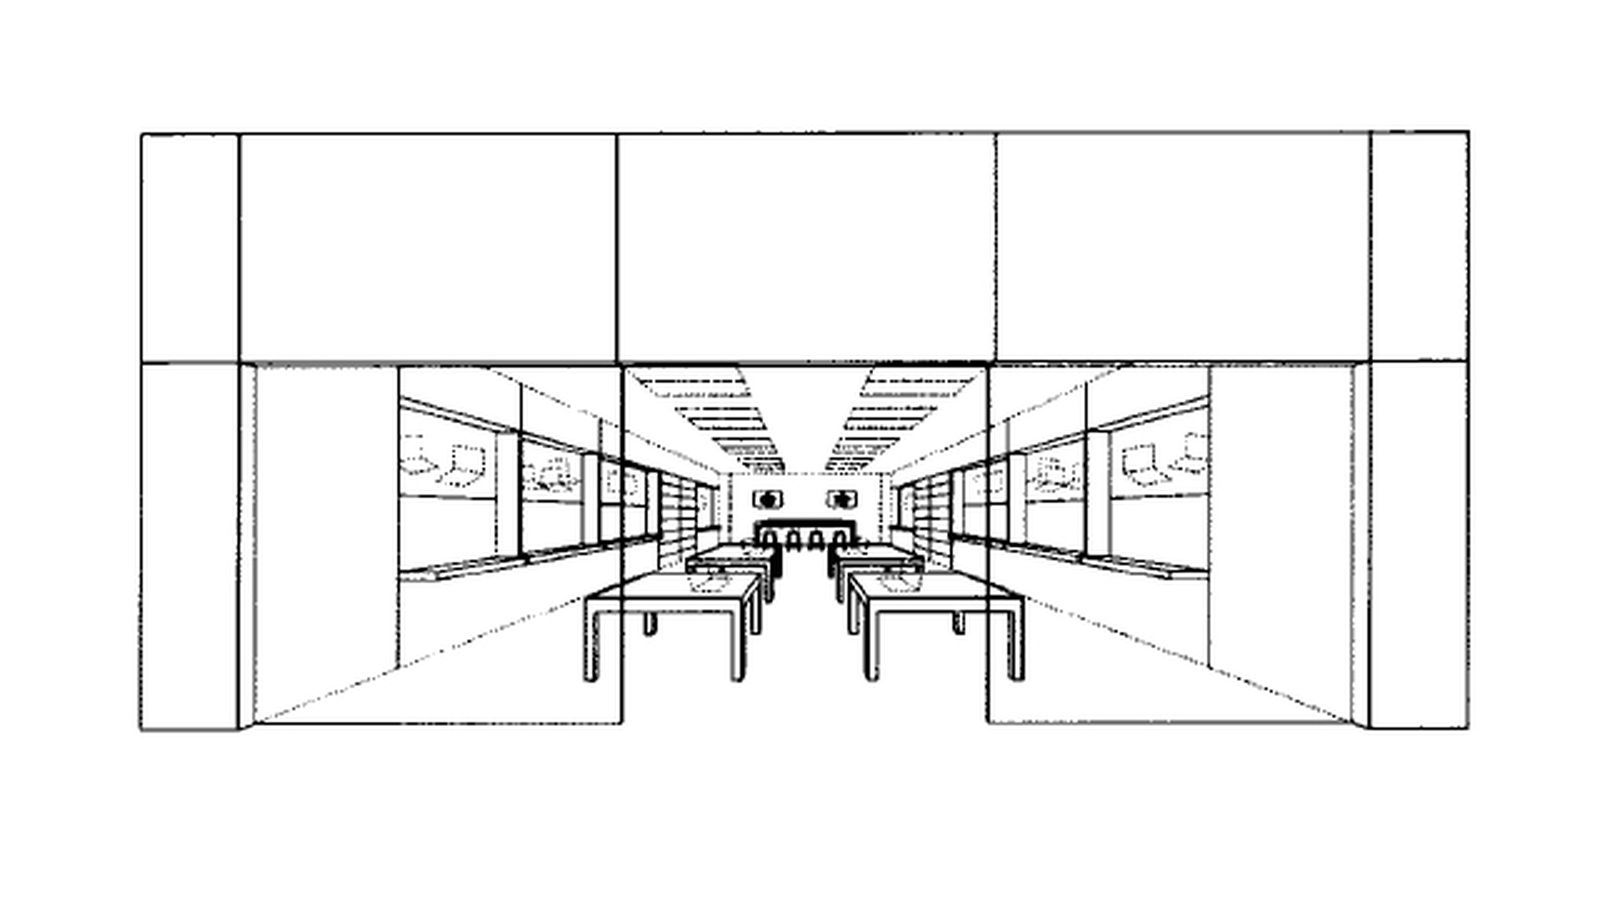 Apple Trademarks Its Retail Store Design